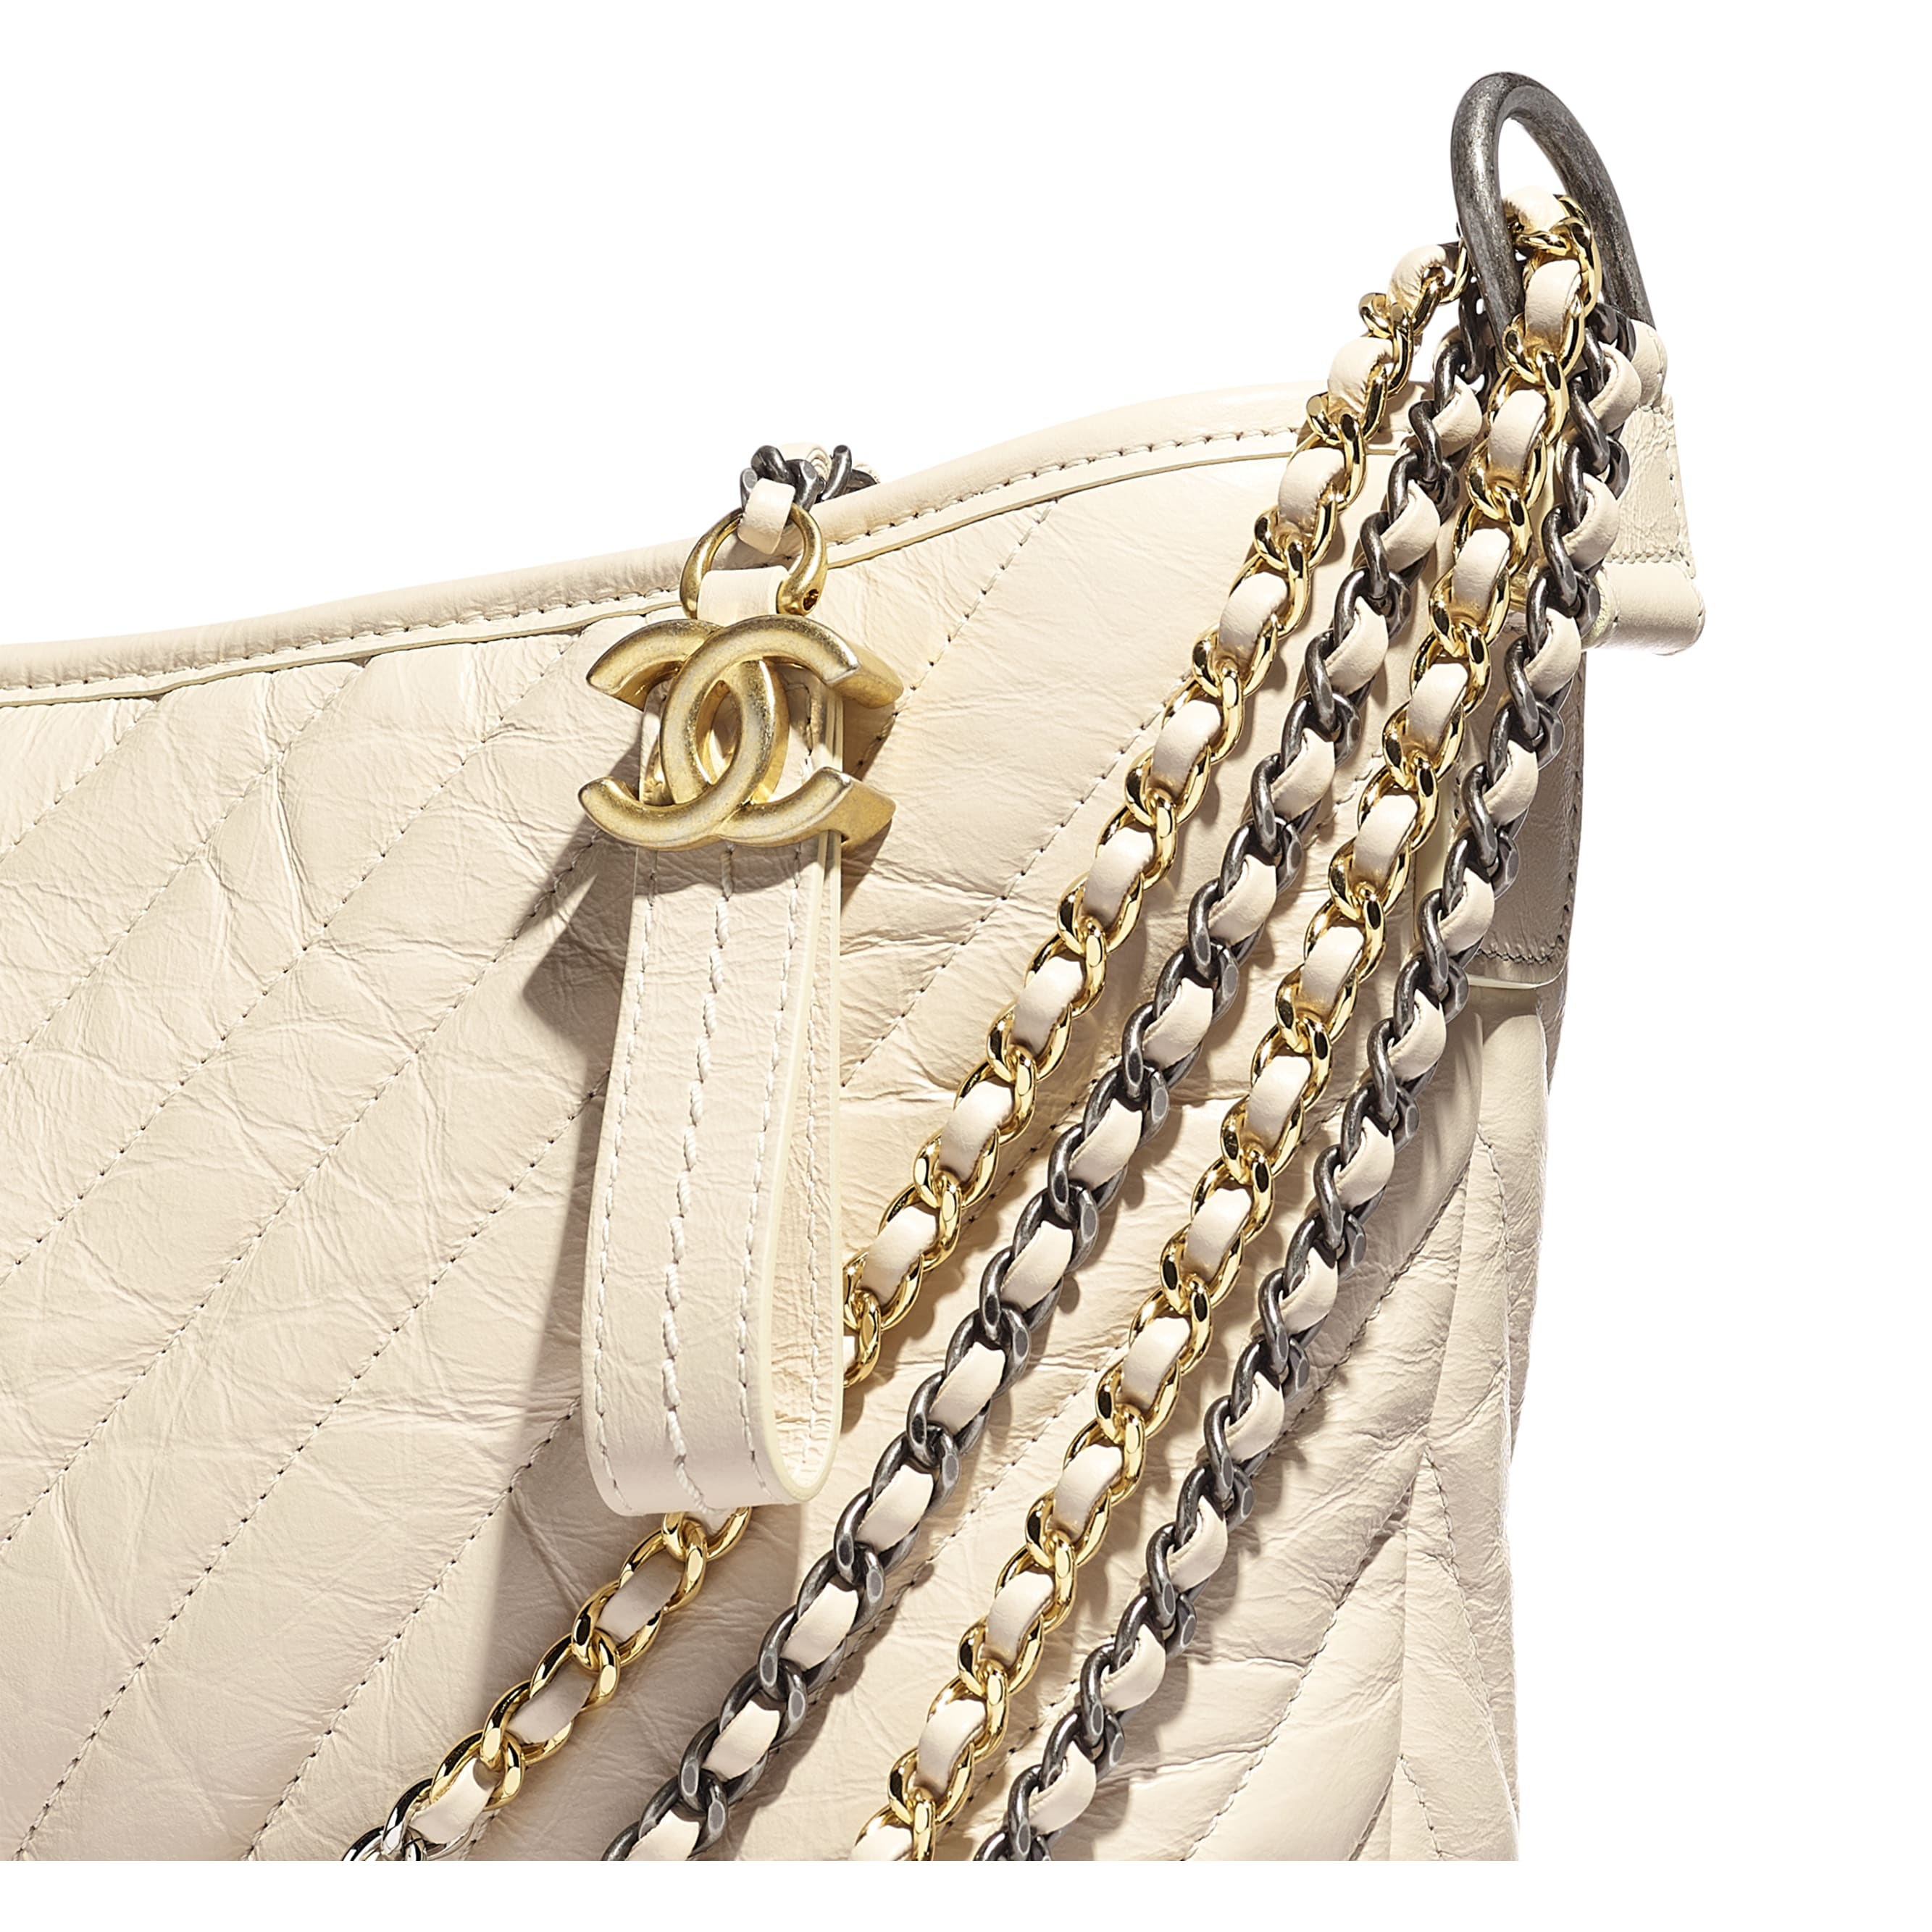 CHANEL'S GABRIELLE Large Hobo Bag - Light Beige - Aged Calfskin, Smooth Calfskin, Gold-Tone, Silver-Tone & Ruthenium-Finish Metal - CHANEL - Extra view - see standard sized version